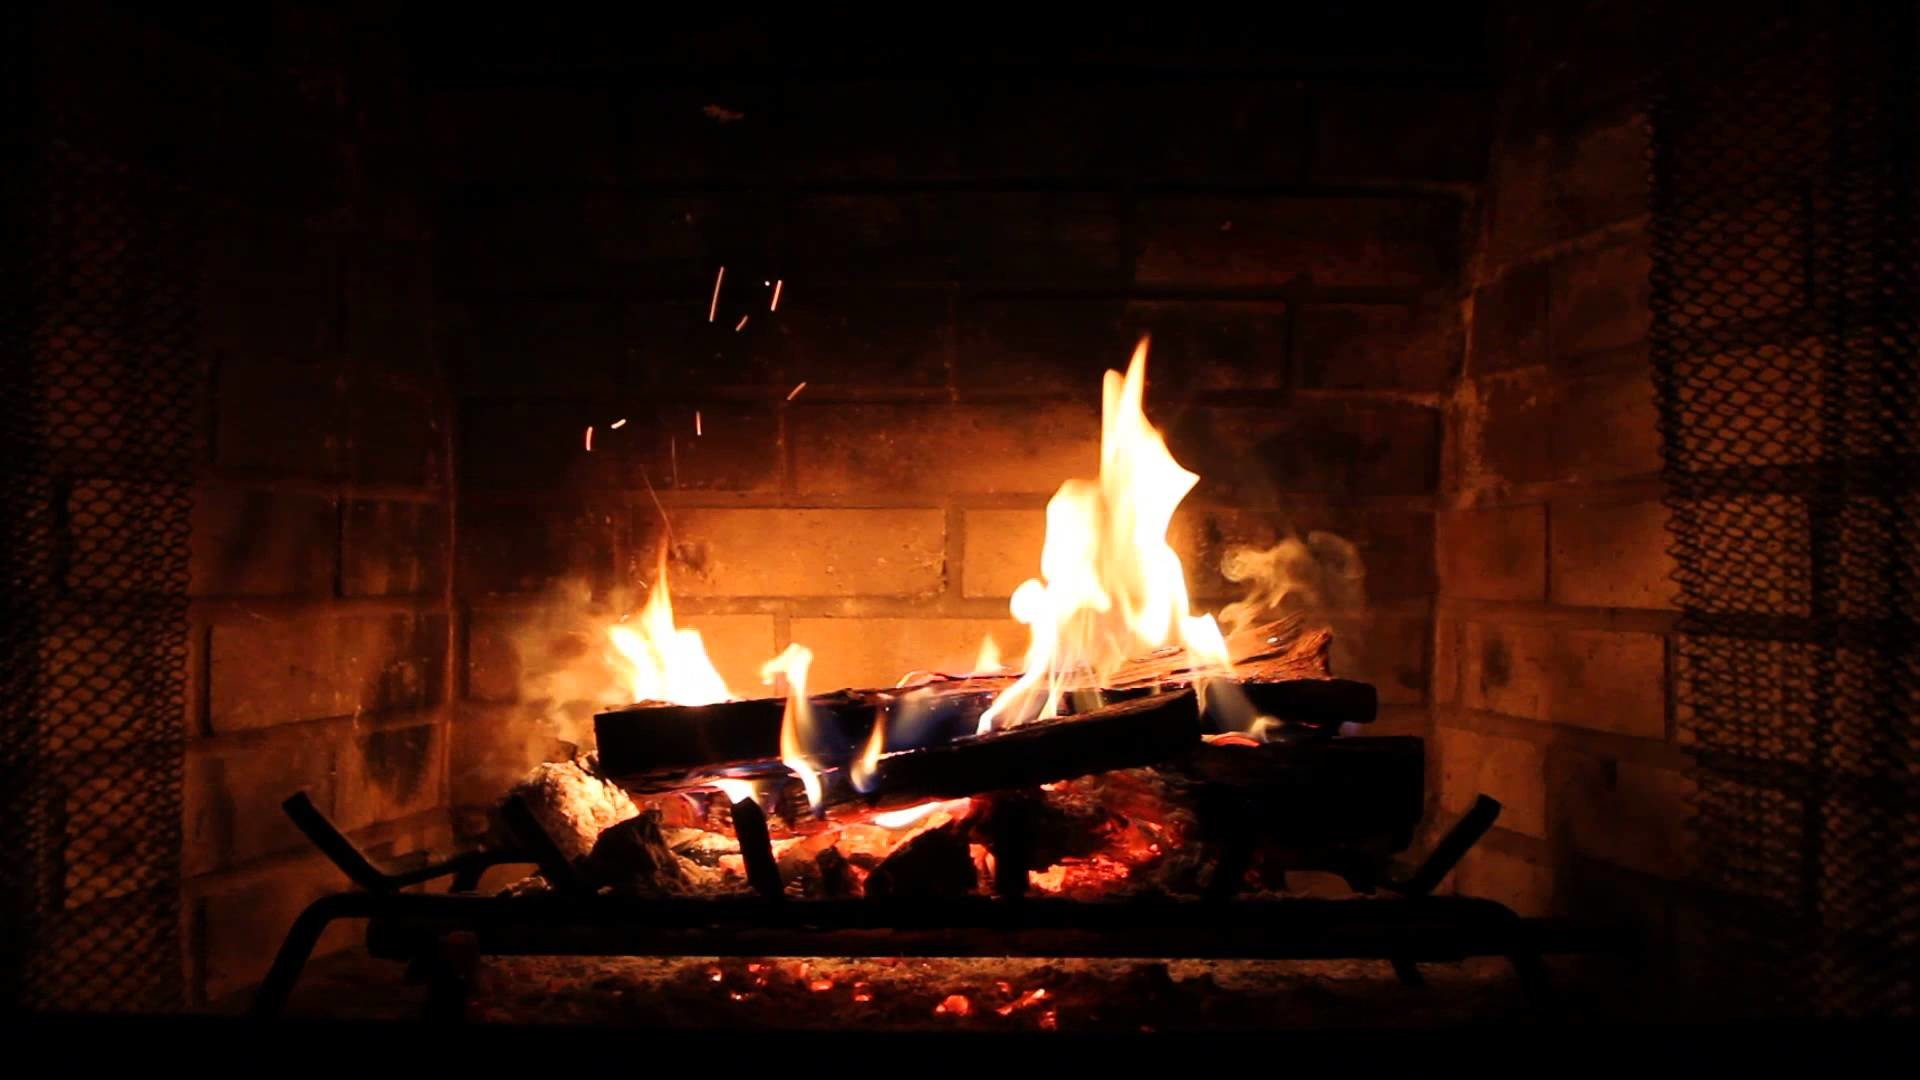 Fireplace Wallpaper 57 Images